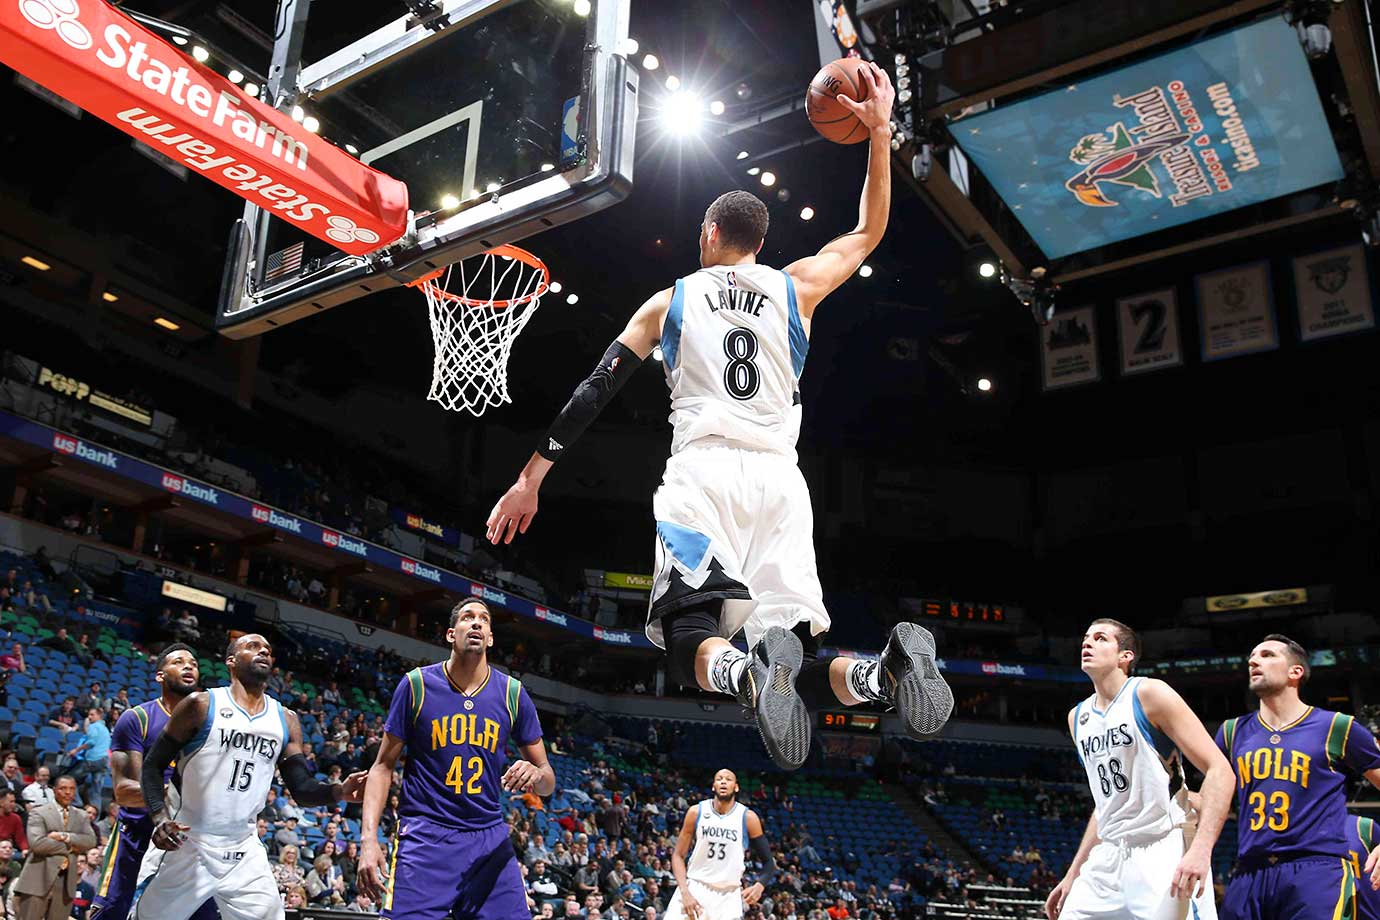 Zach LaVine of the Timberwolves goes for the dunk against the New Orleans Pelicans.